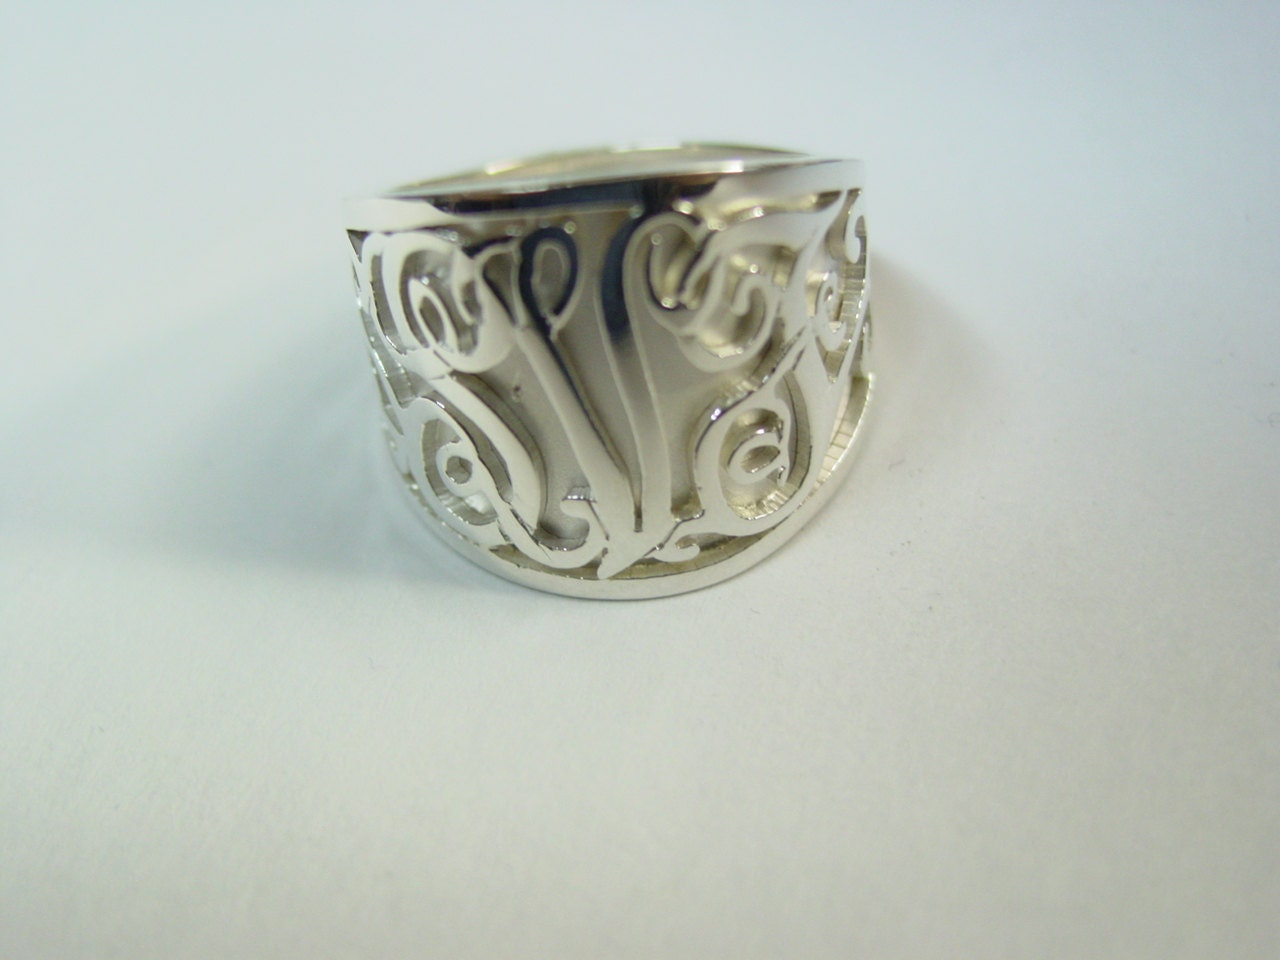 monogram ring sterling silver any ring size ssr6